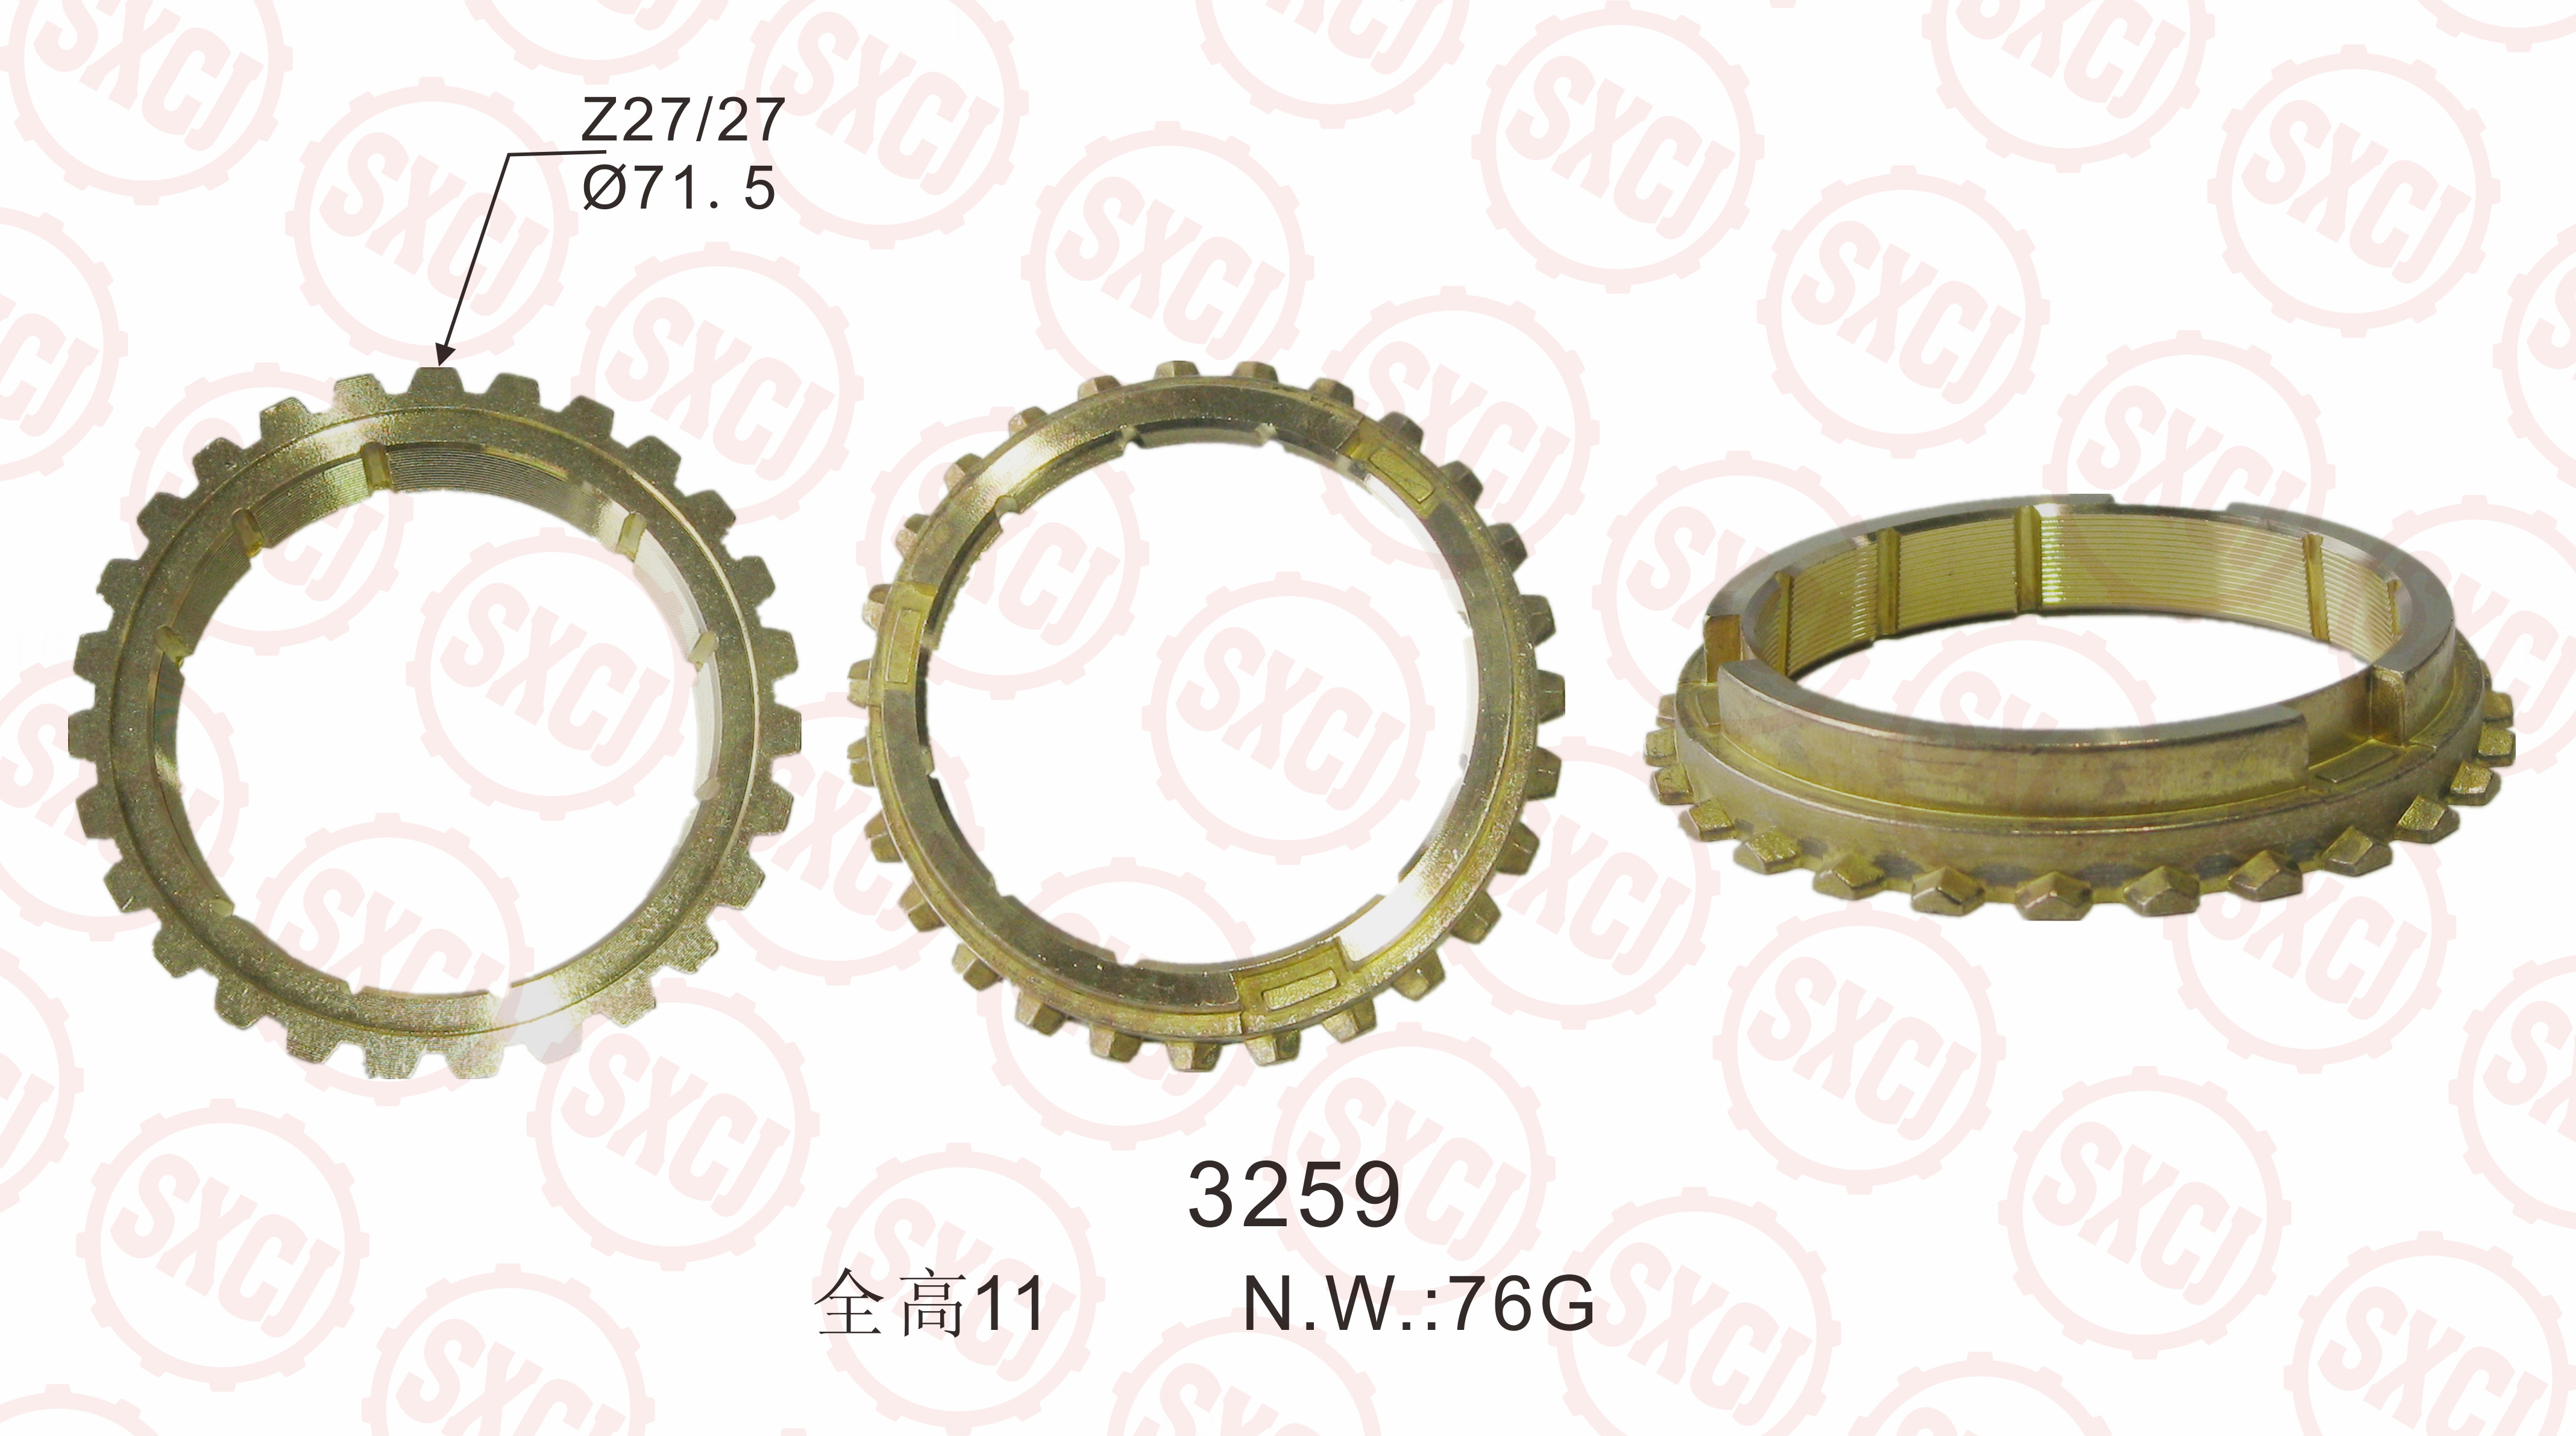 synchronizer ring for hilux